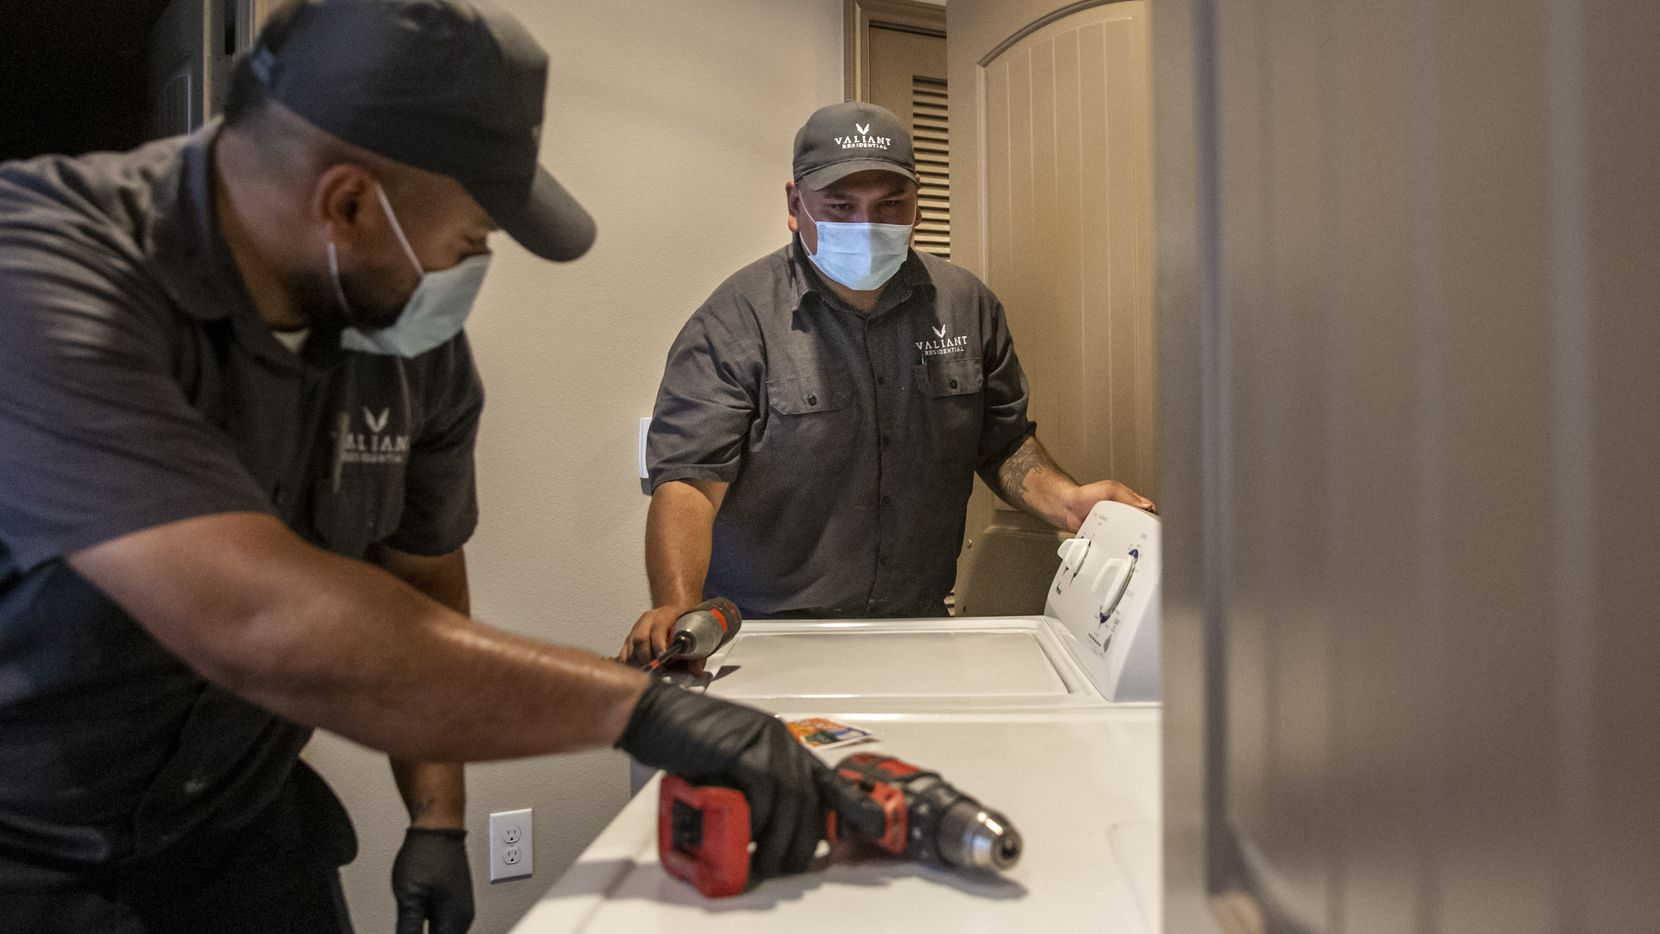 Valiant Residential lead maintenance technician Adrian Mendez (right) and assistant maintenance technician Rafael Muñoz work on washing machines at the Lakewood Flats Apartments in Dallas on Sept. 8.